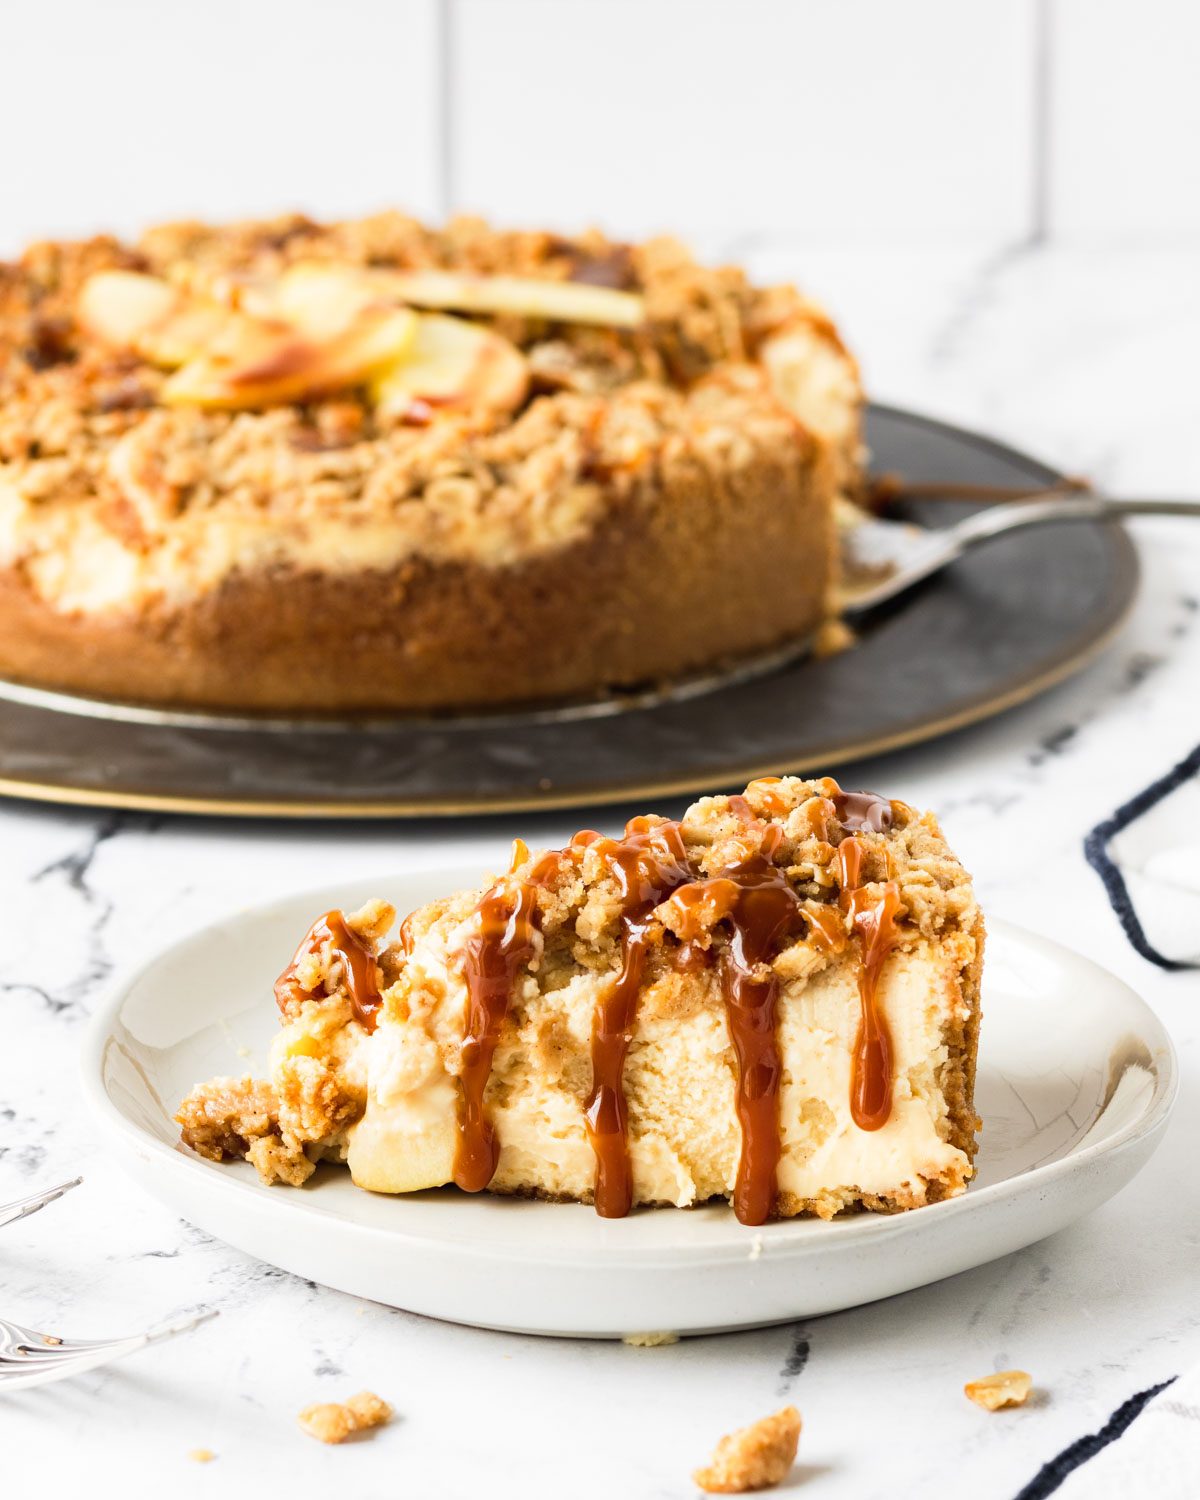 Slice of caramel apple crumble cheesecake, with caramel dropping down the sides, and the whole cheesecake in the background.